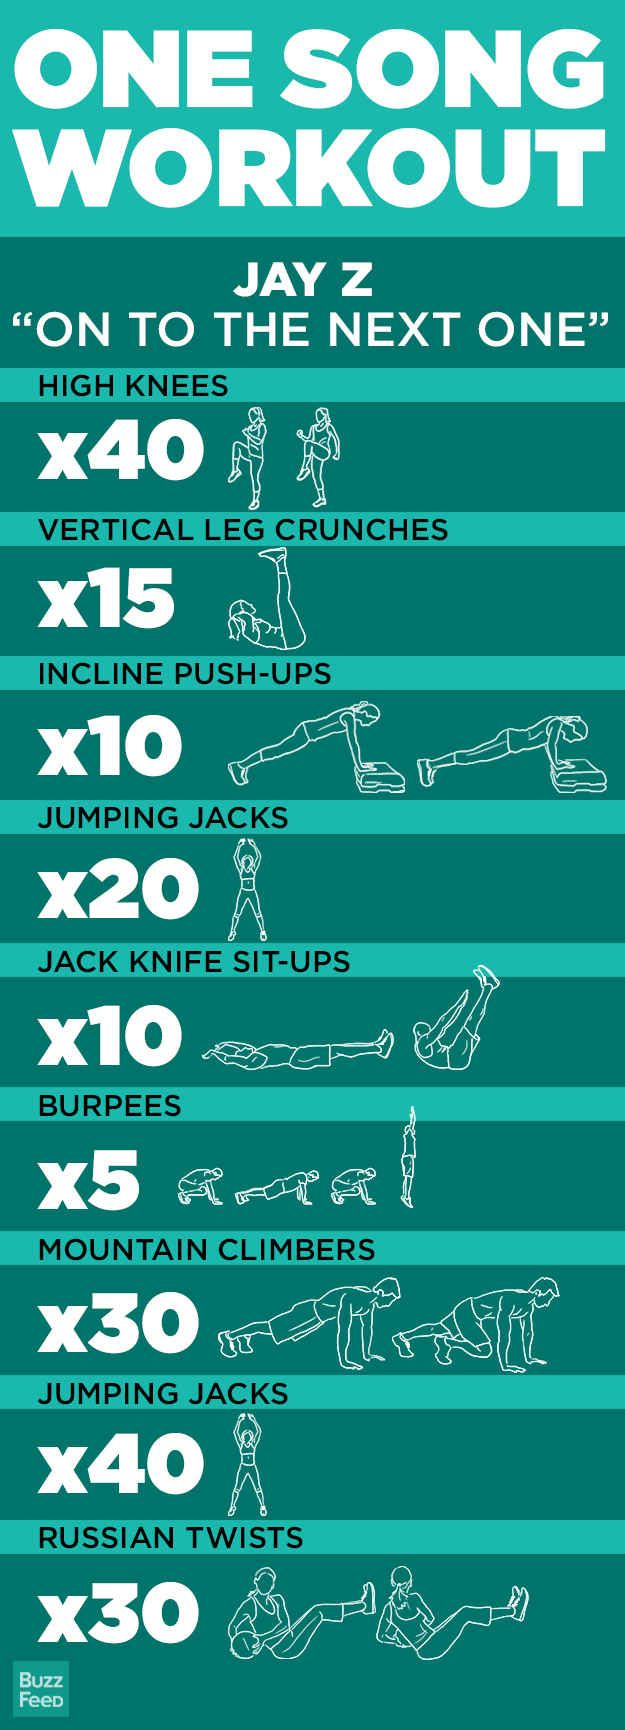 5 One-Song Workouts - BuzzFeed Mobile Get a Flat Belly in 4 Weeks! More info here: http://perfect-diets.space/get-a-flat-belly-in-4-weeks/